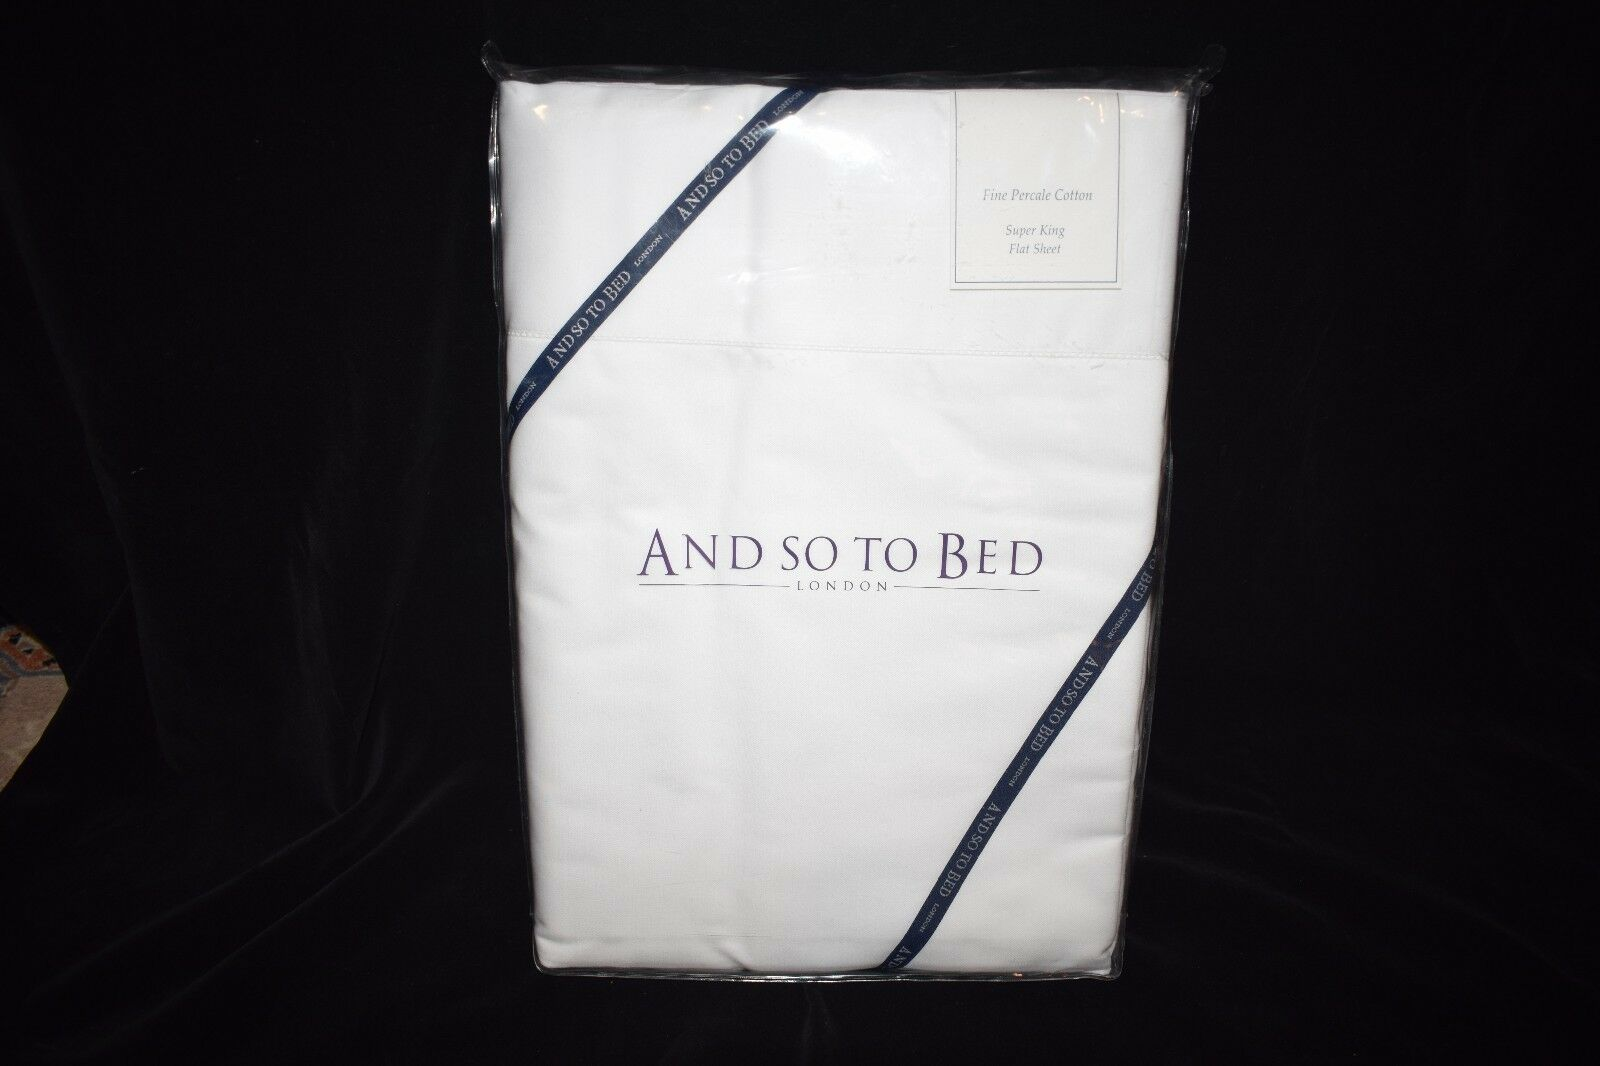 Super King Flat Sheet from AND SO TO BED - London - Fine Percale Cotton